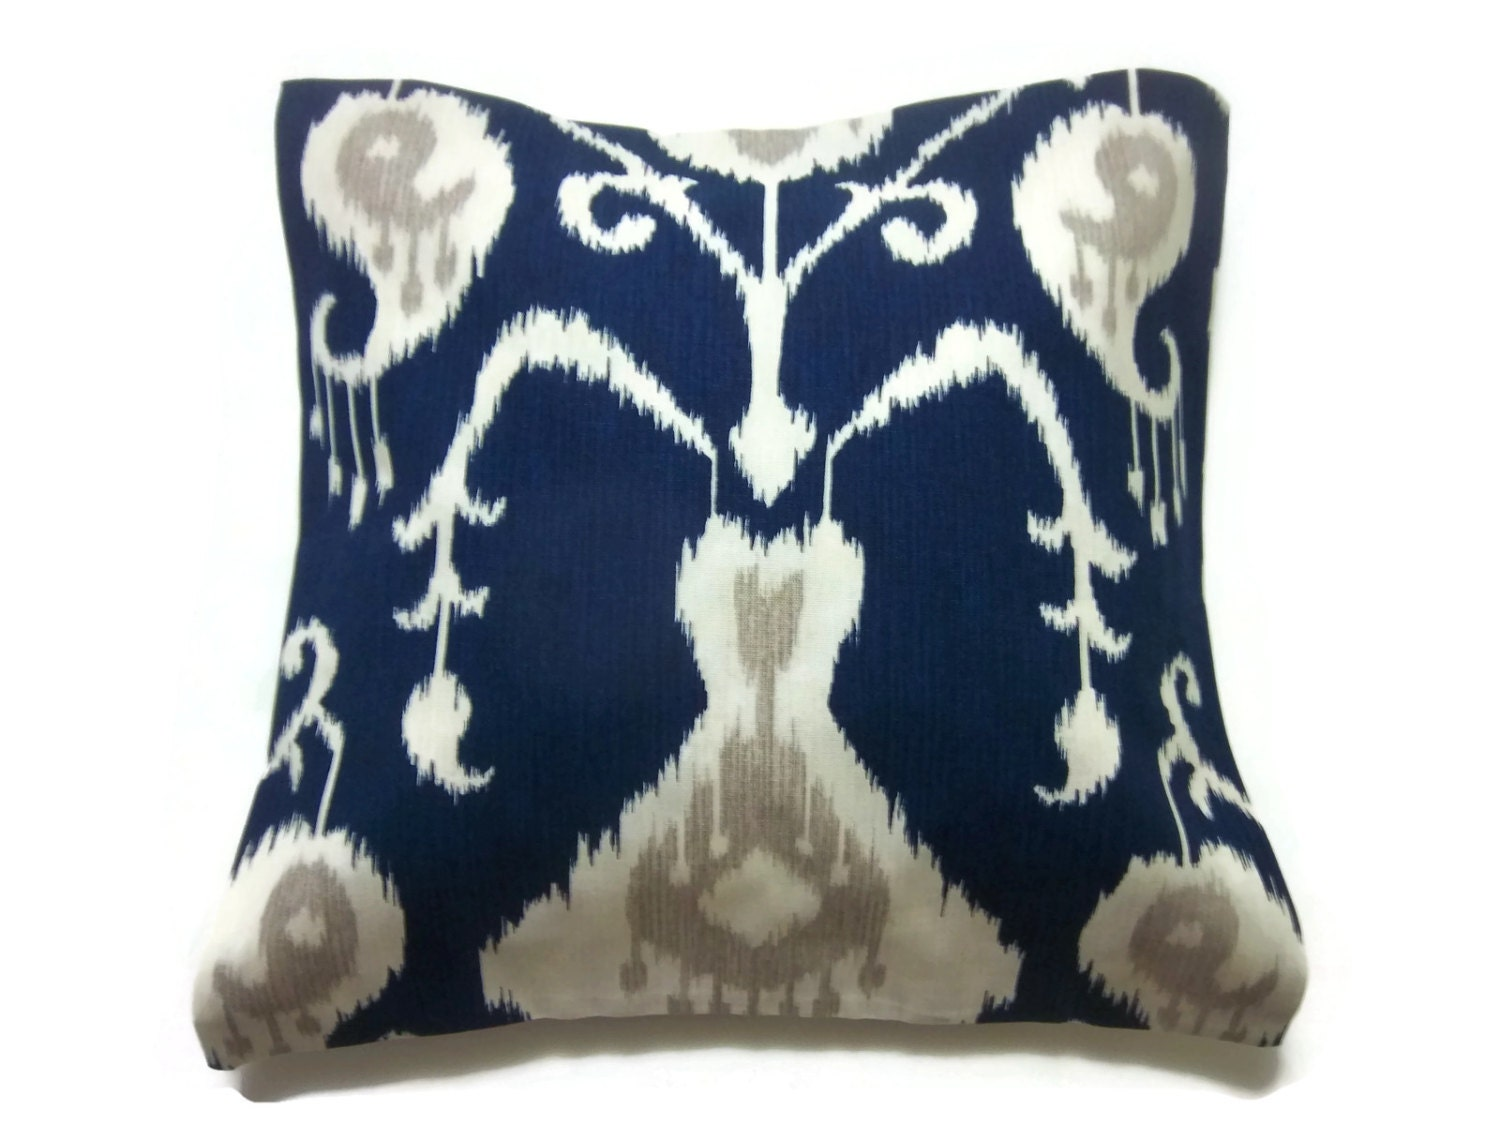 Navy Blue Decorative Bed Pillows: Decorative Pillow Cover Navy Blue White Taupe Ikat Design Same